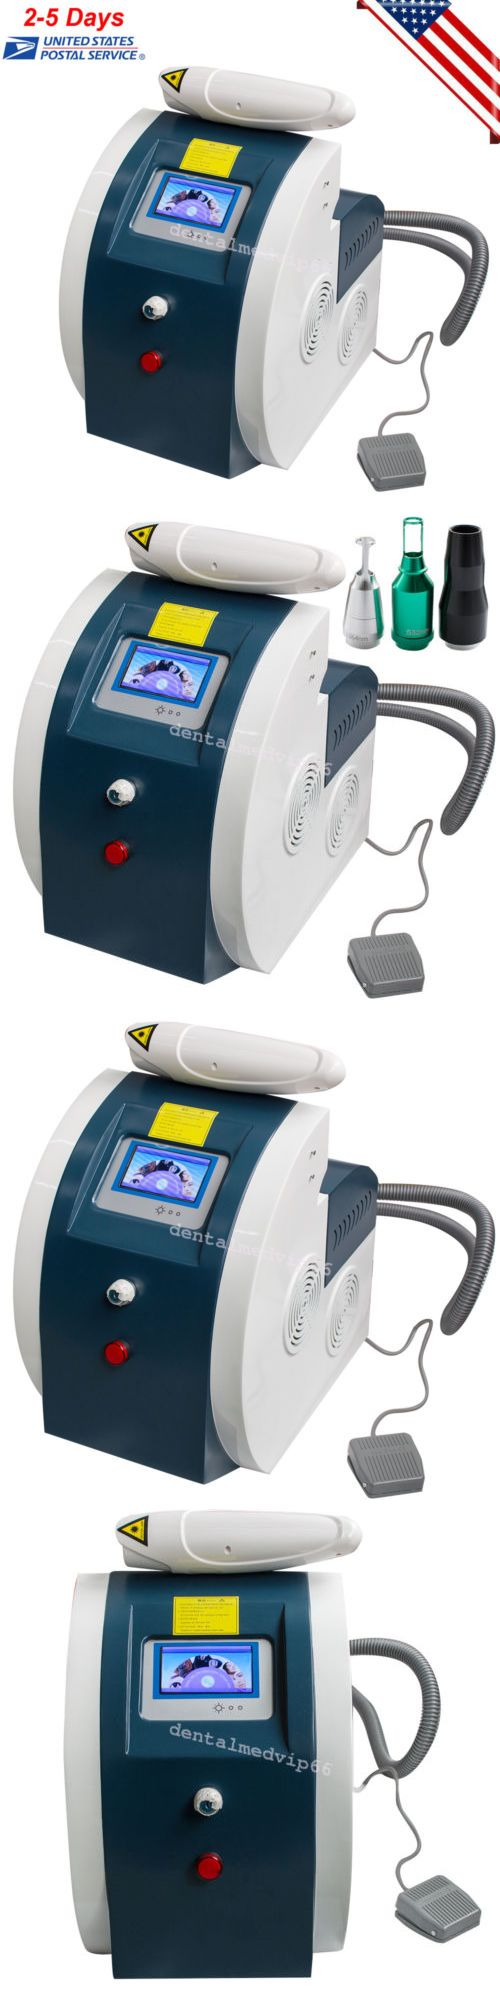 Tattoo Removal Machines: Laser Tattoo Eyebrow Pigment Removal Beauty Machine Eyelid Lip Line Flecks 110V -> BUY IT NOW ONLY: $682.5 on eBay!